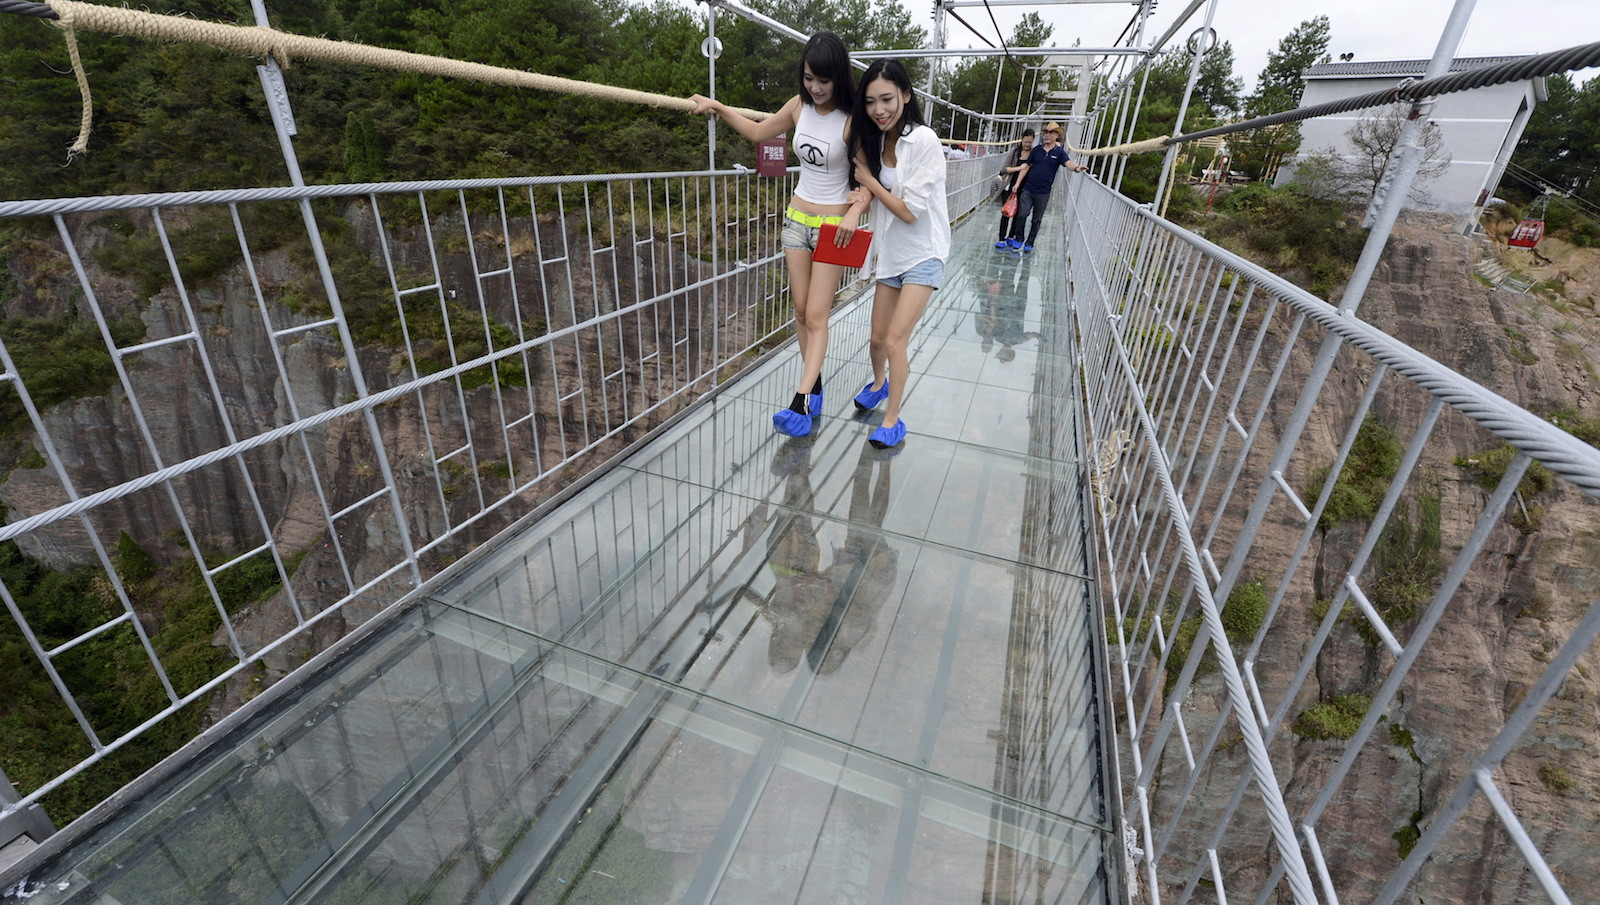 Tourists look down as they walk on a glass suspension bridge at the Shiniuzhai National Geo-park in Pinging county, Hunan province, China, September 24, 2015. The 300-metre-long (984 ft) glass bridge, which opened to tourists for the first time on Thursday, spans over a canyon which is about 180 metre deep (591 ft), local media reported. REUTERS/China Daily CHINA OUT. NO COMMERCIAL OR EDITORIAL SALES IN CHINA      TPX IMAGES OF THE DAY      - RTX1S6SS